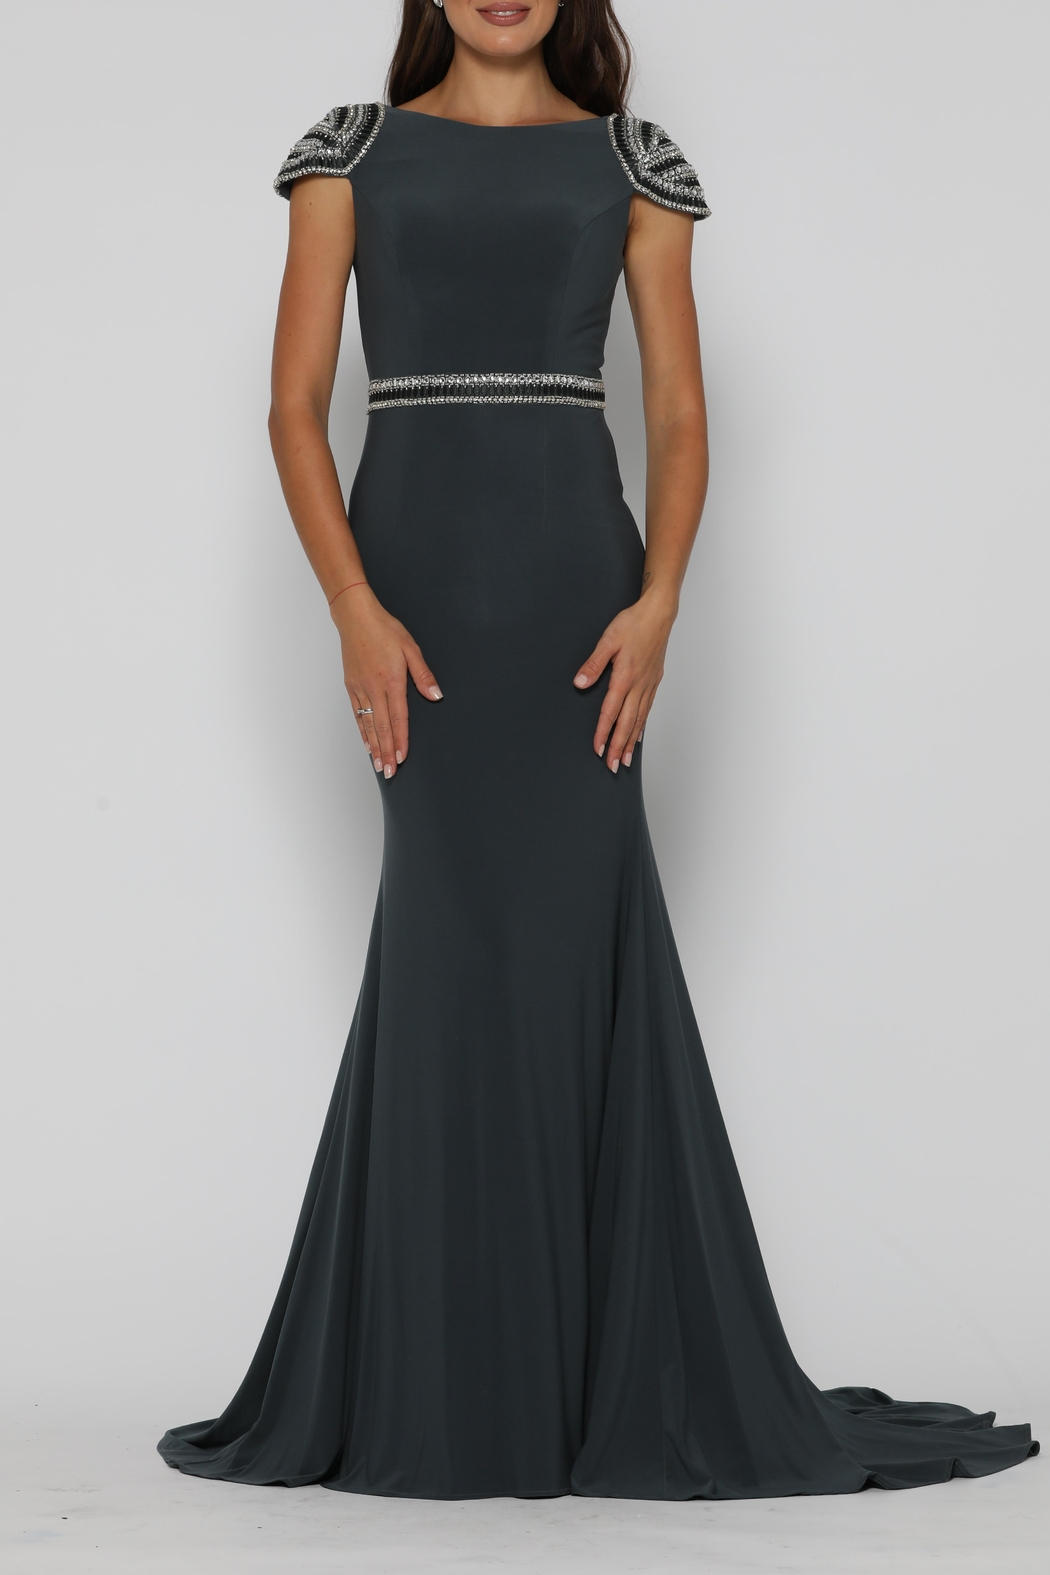 Jadore Eric Dress Gunmetal - Main Image